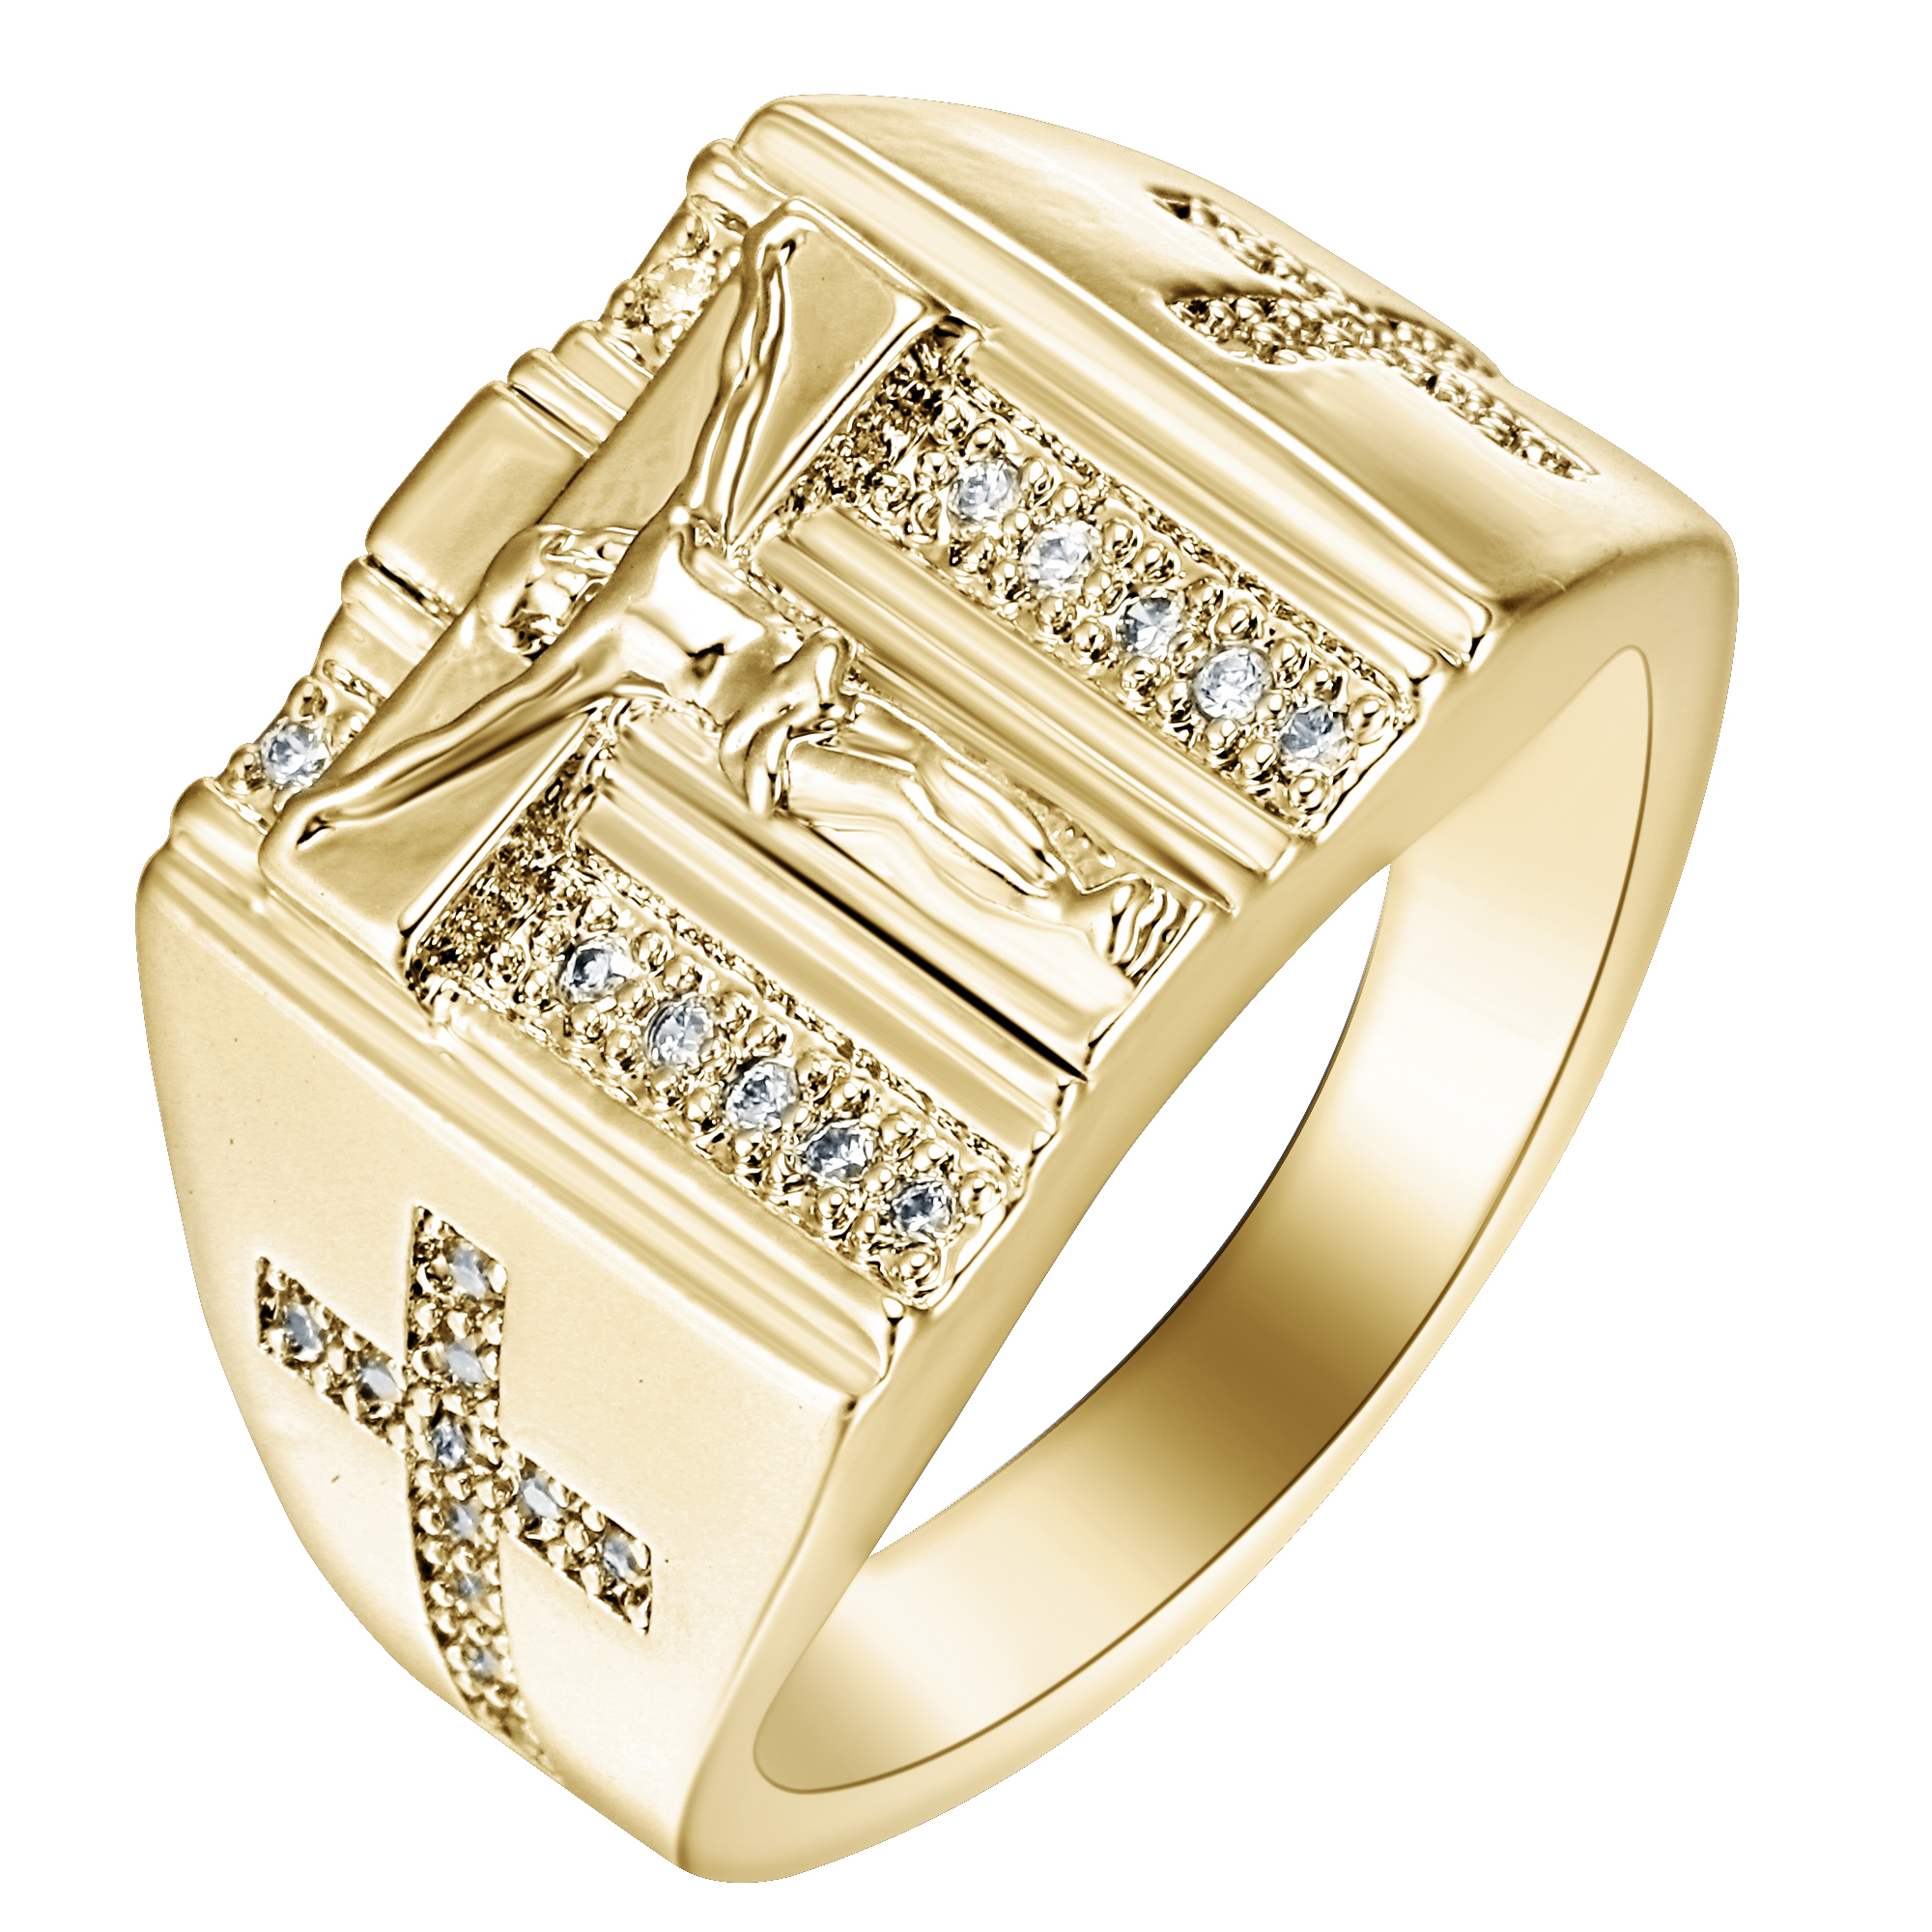 rings anniversary jewellery details product diamond anaya collection fine gent